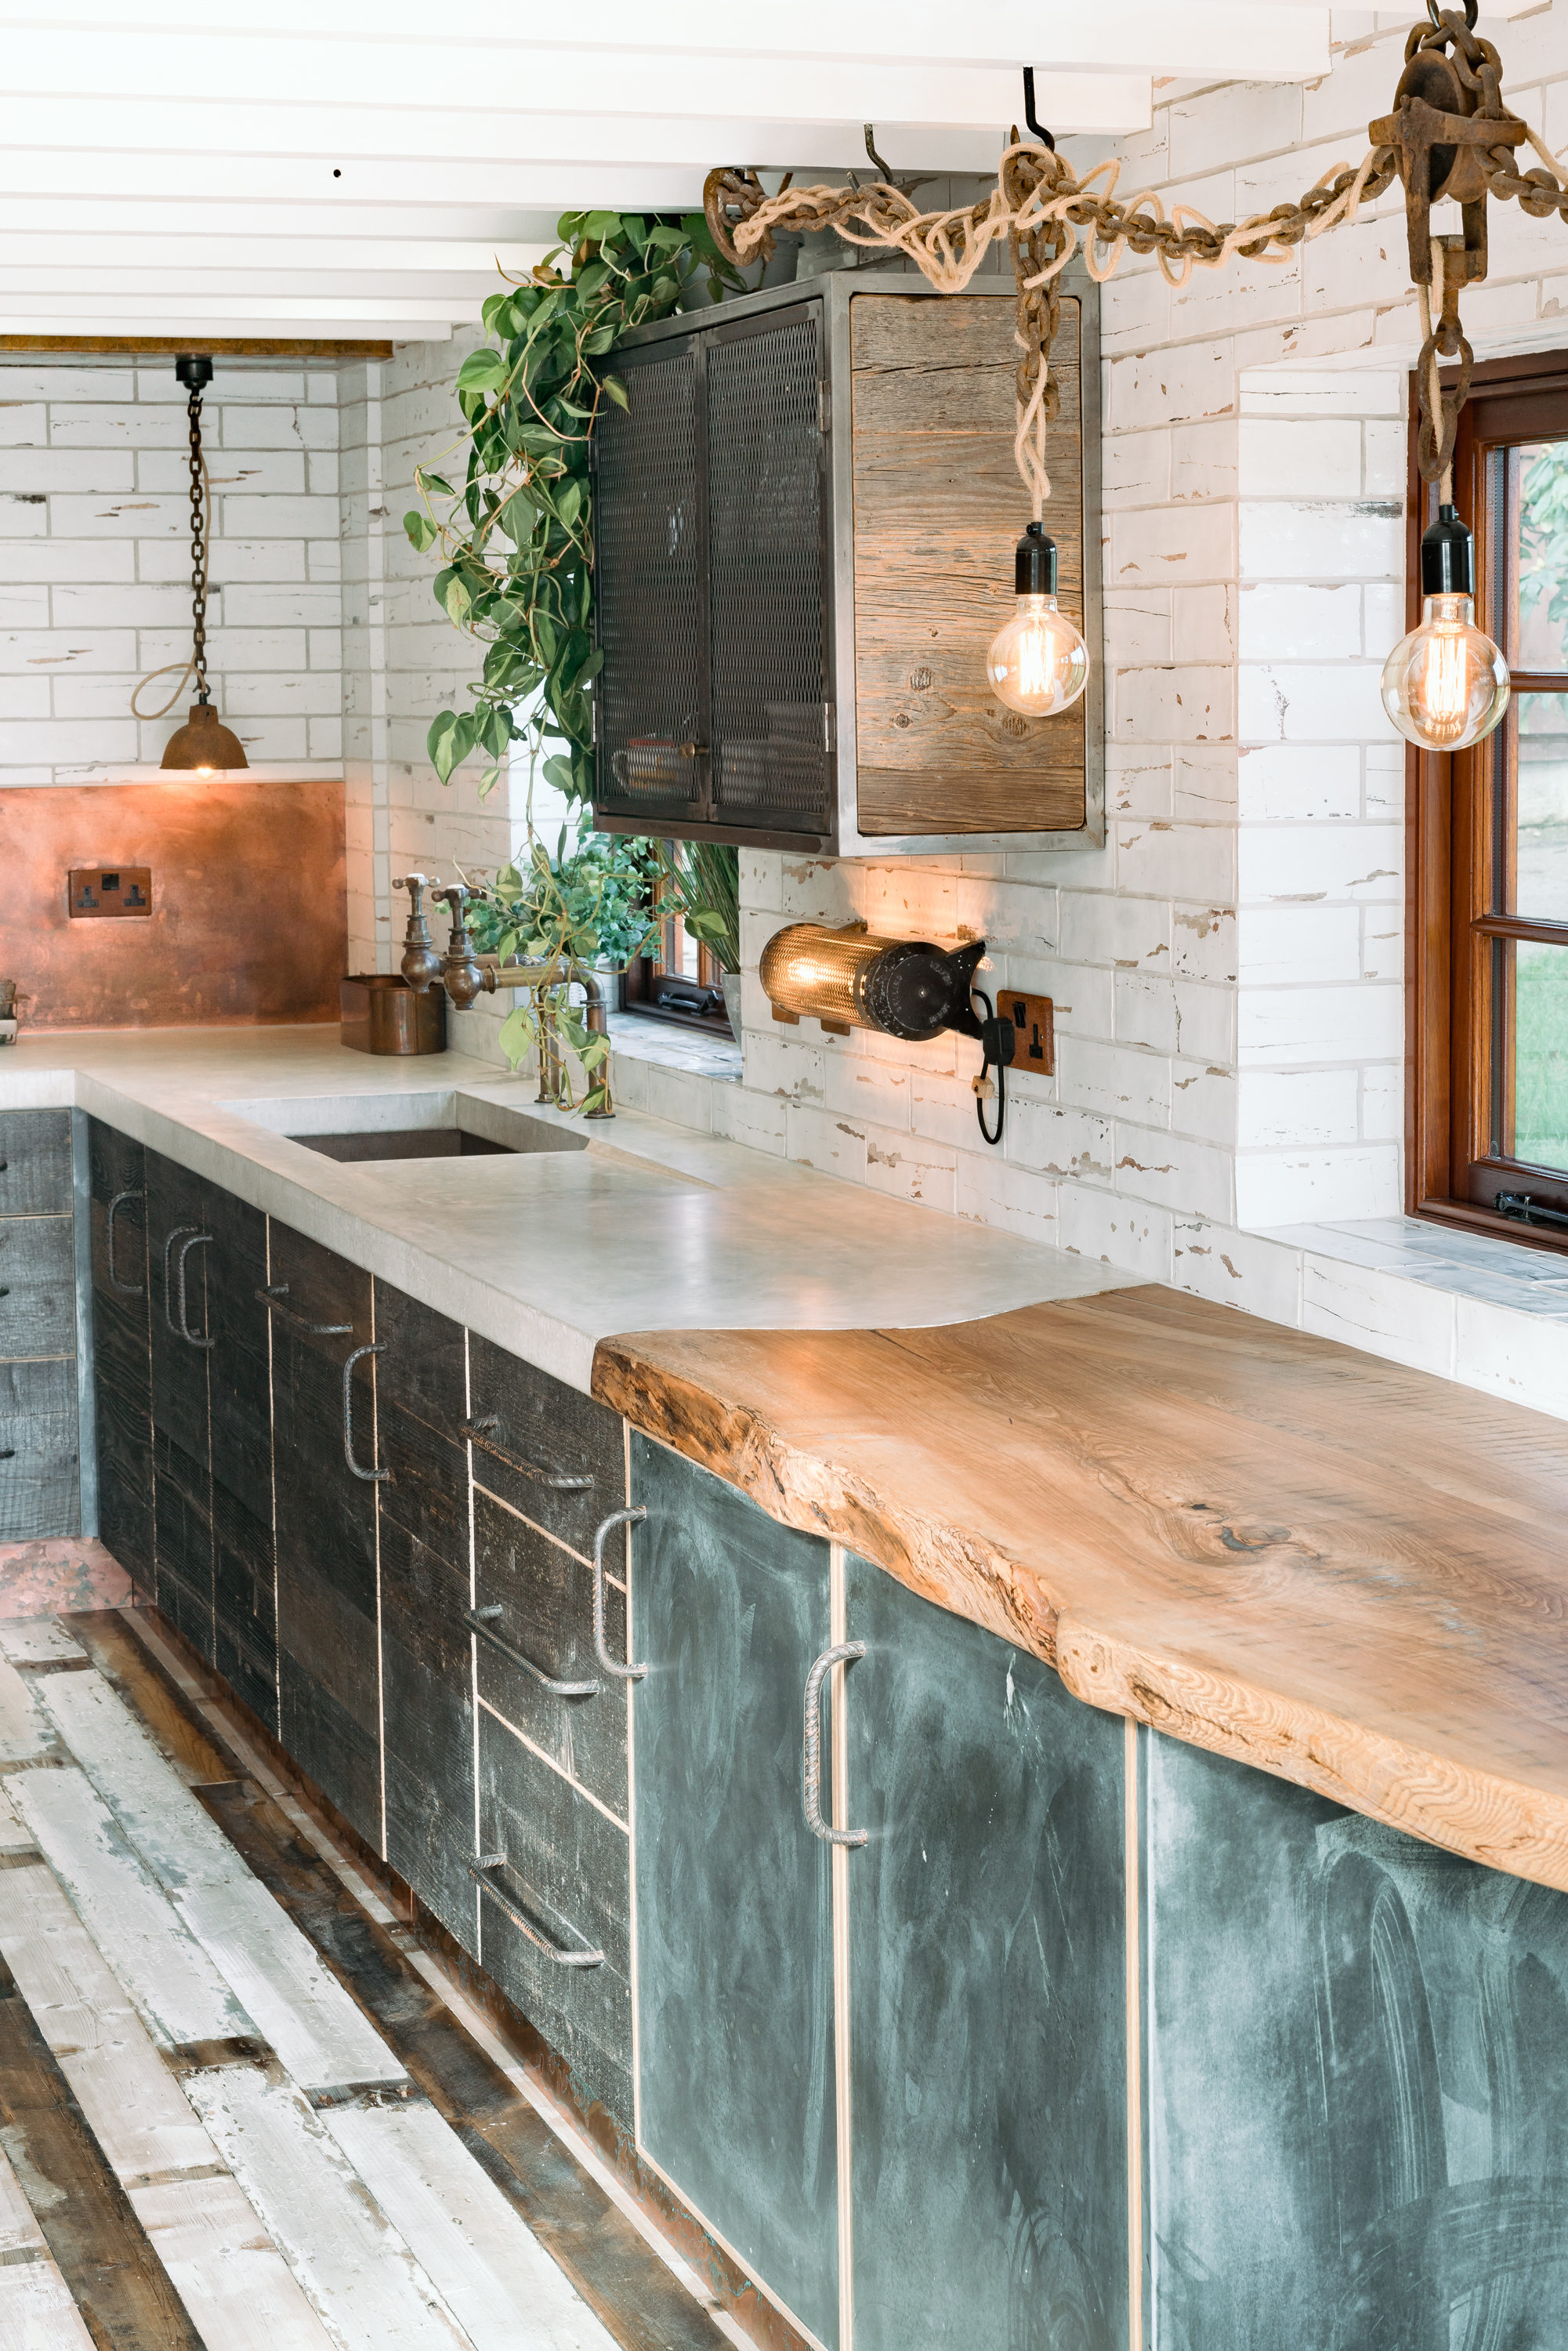 Concrete and Wooden Worktop